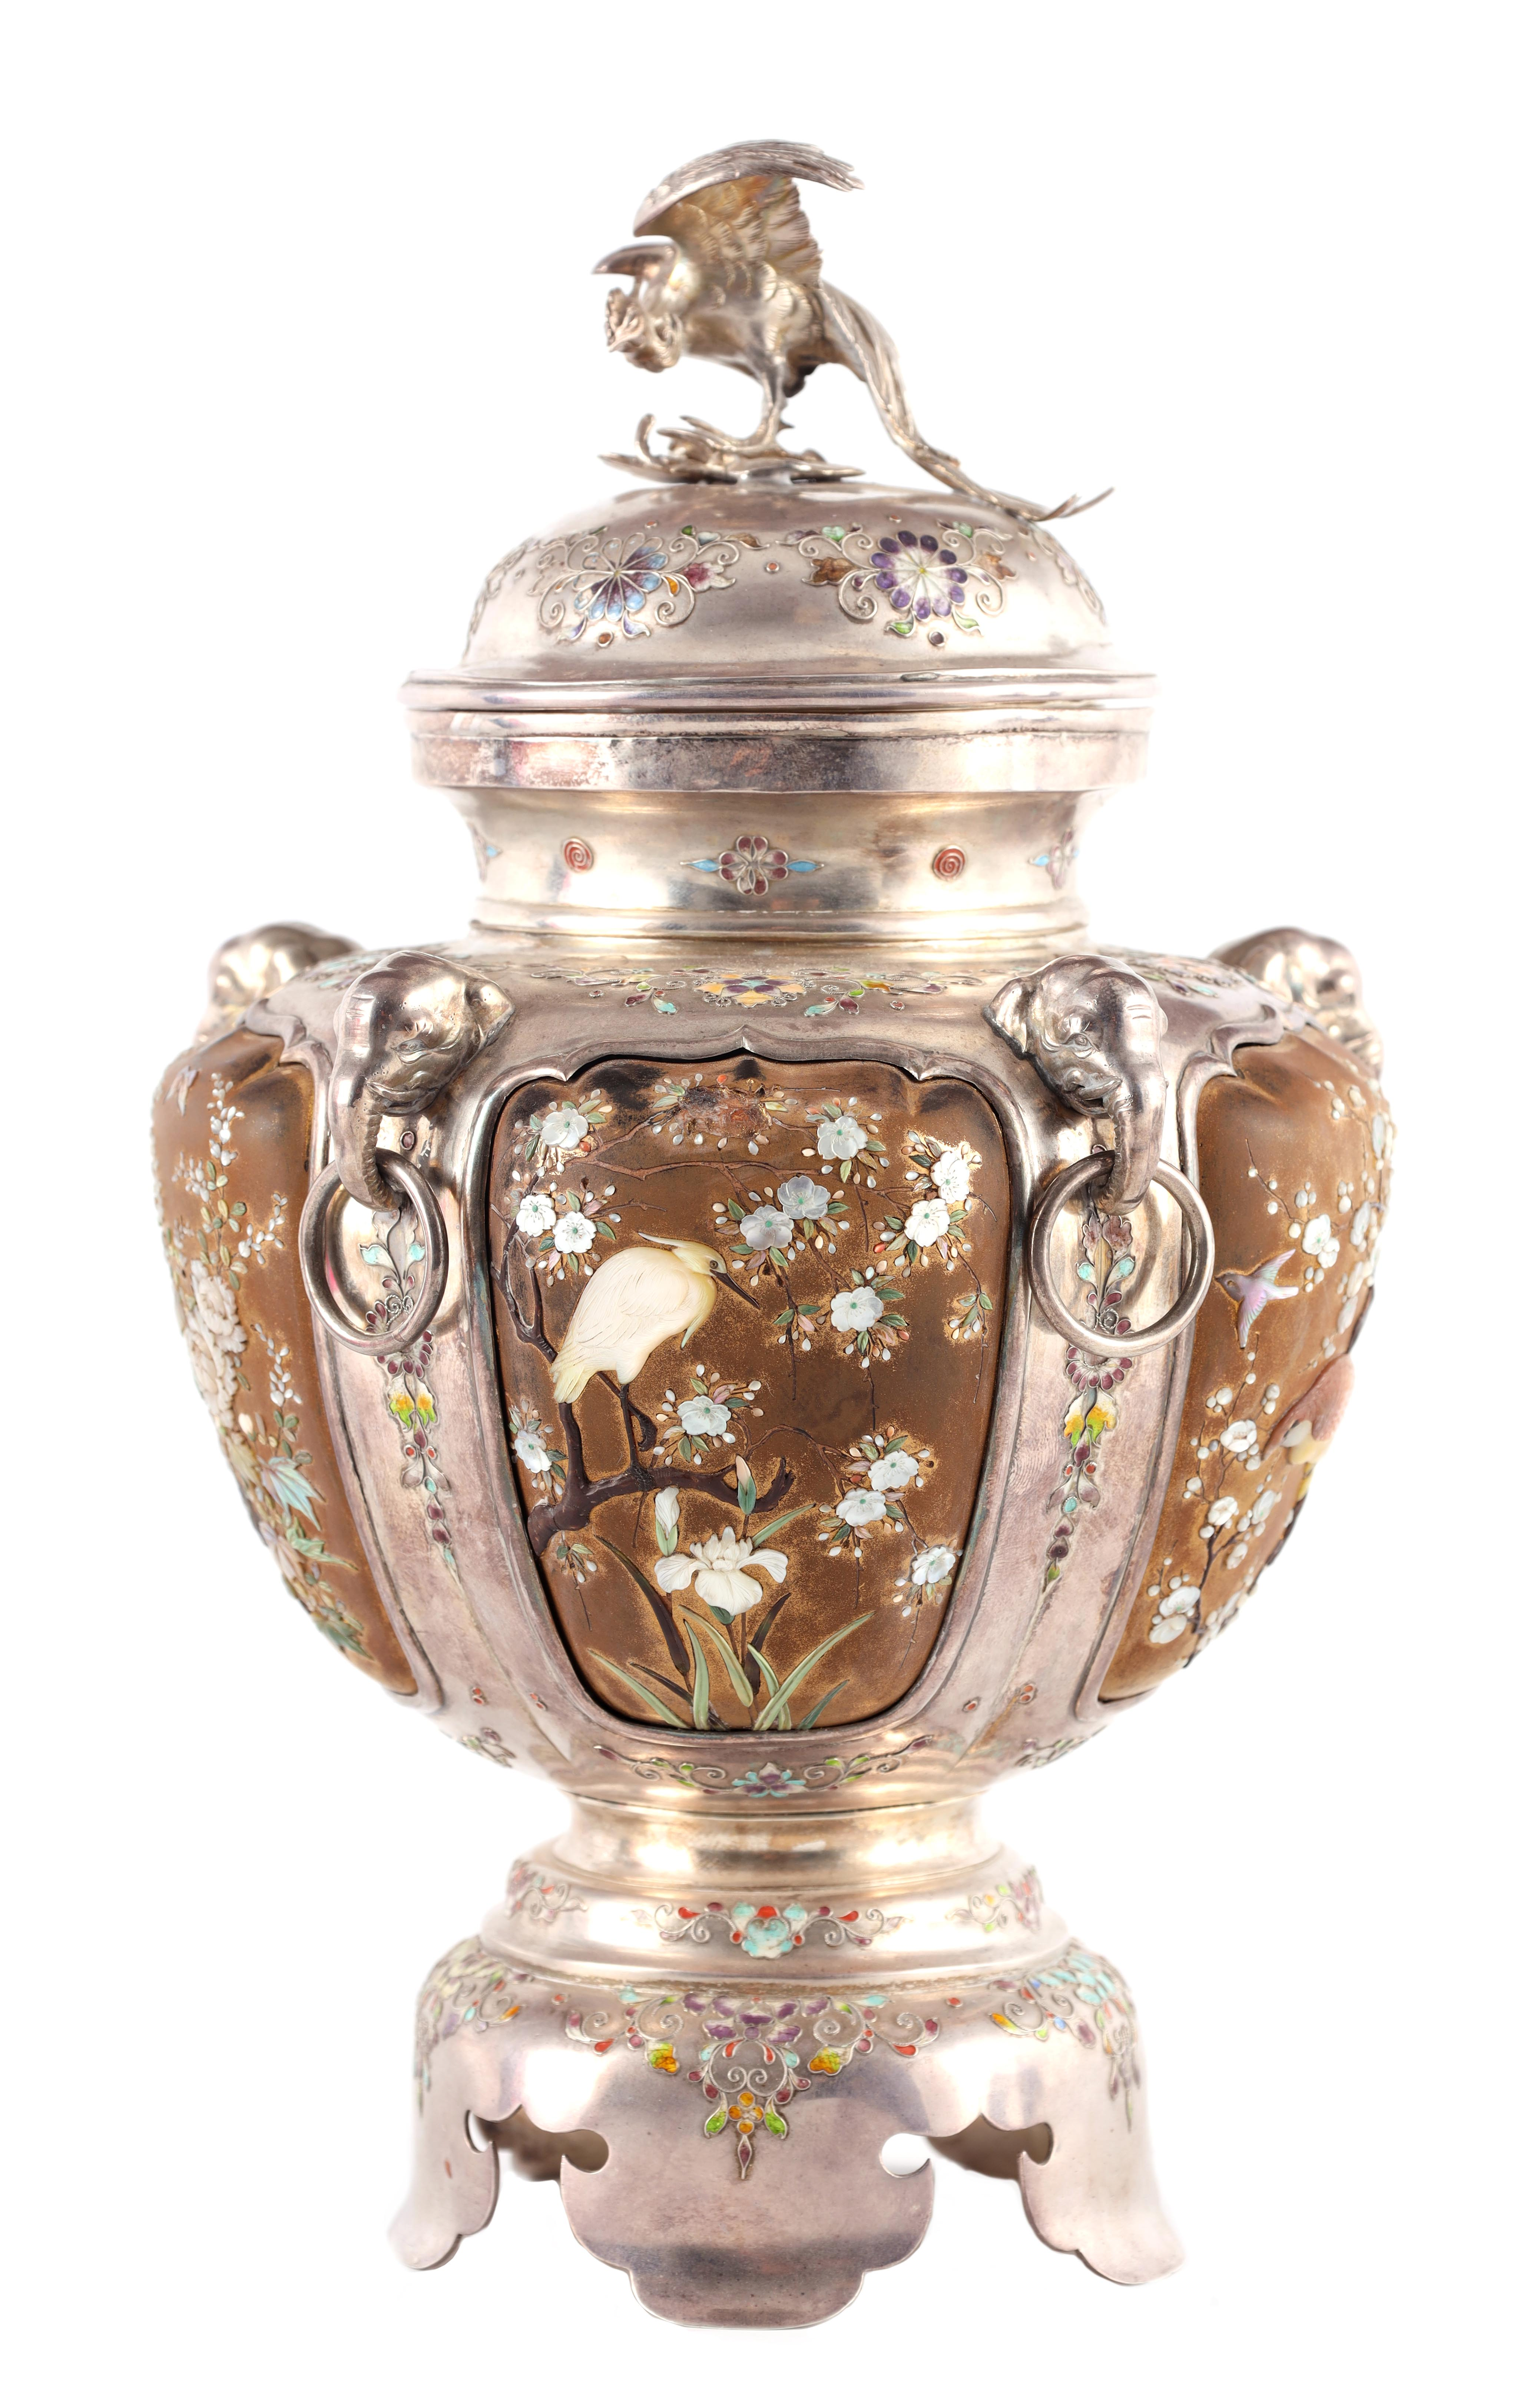 A JAPANESE MEIJI PERIOD SILVER & GOLD LACQUER SHIBAYAMA KORO covered in multicoloured enamels, the